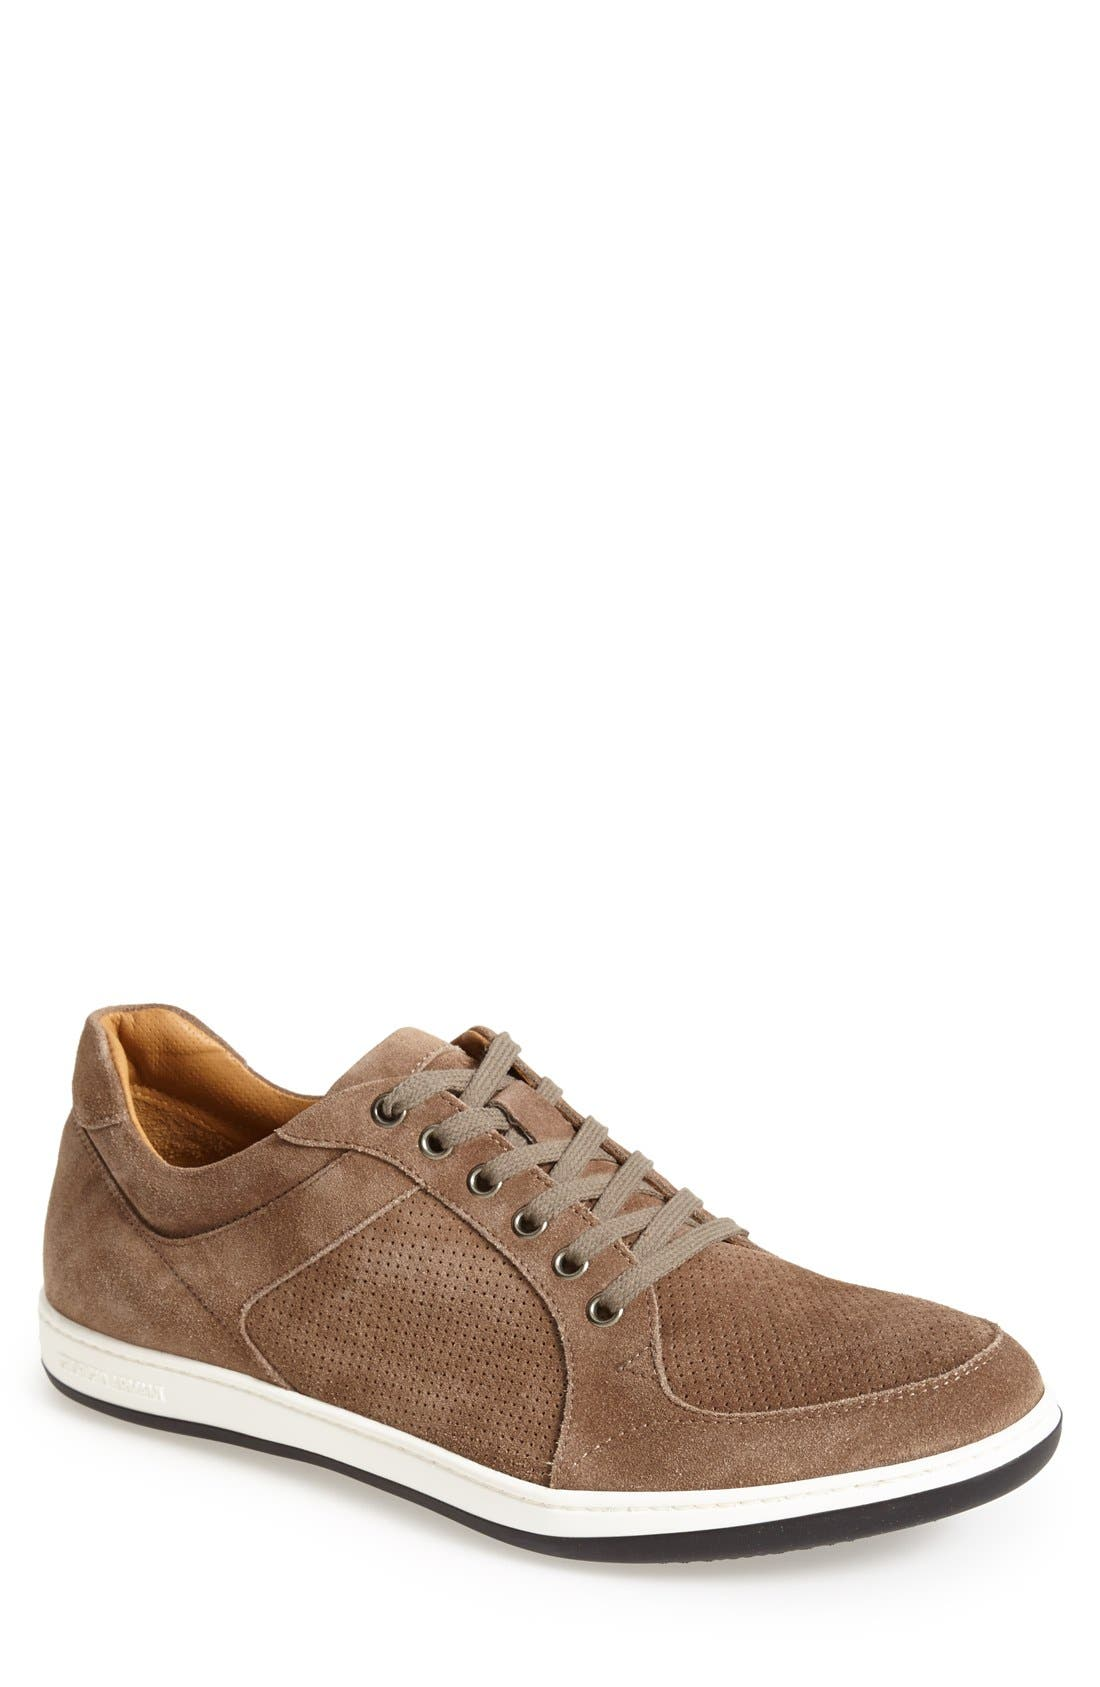 Perforated Suede Sneaker,                             Main thumbnail 1, color,                             260